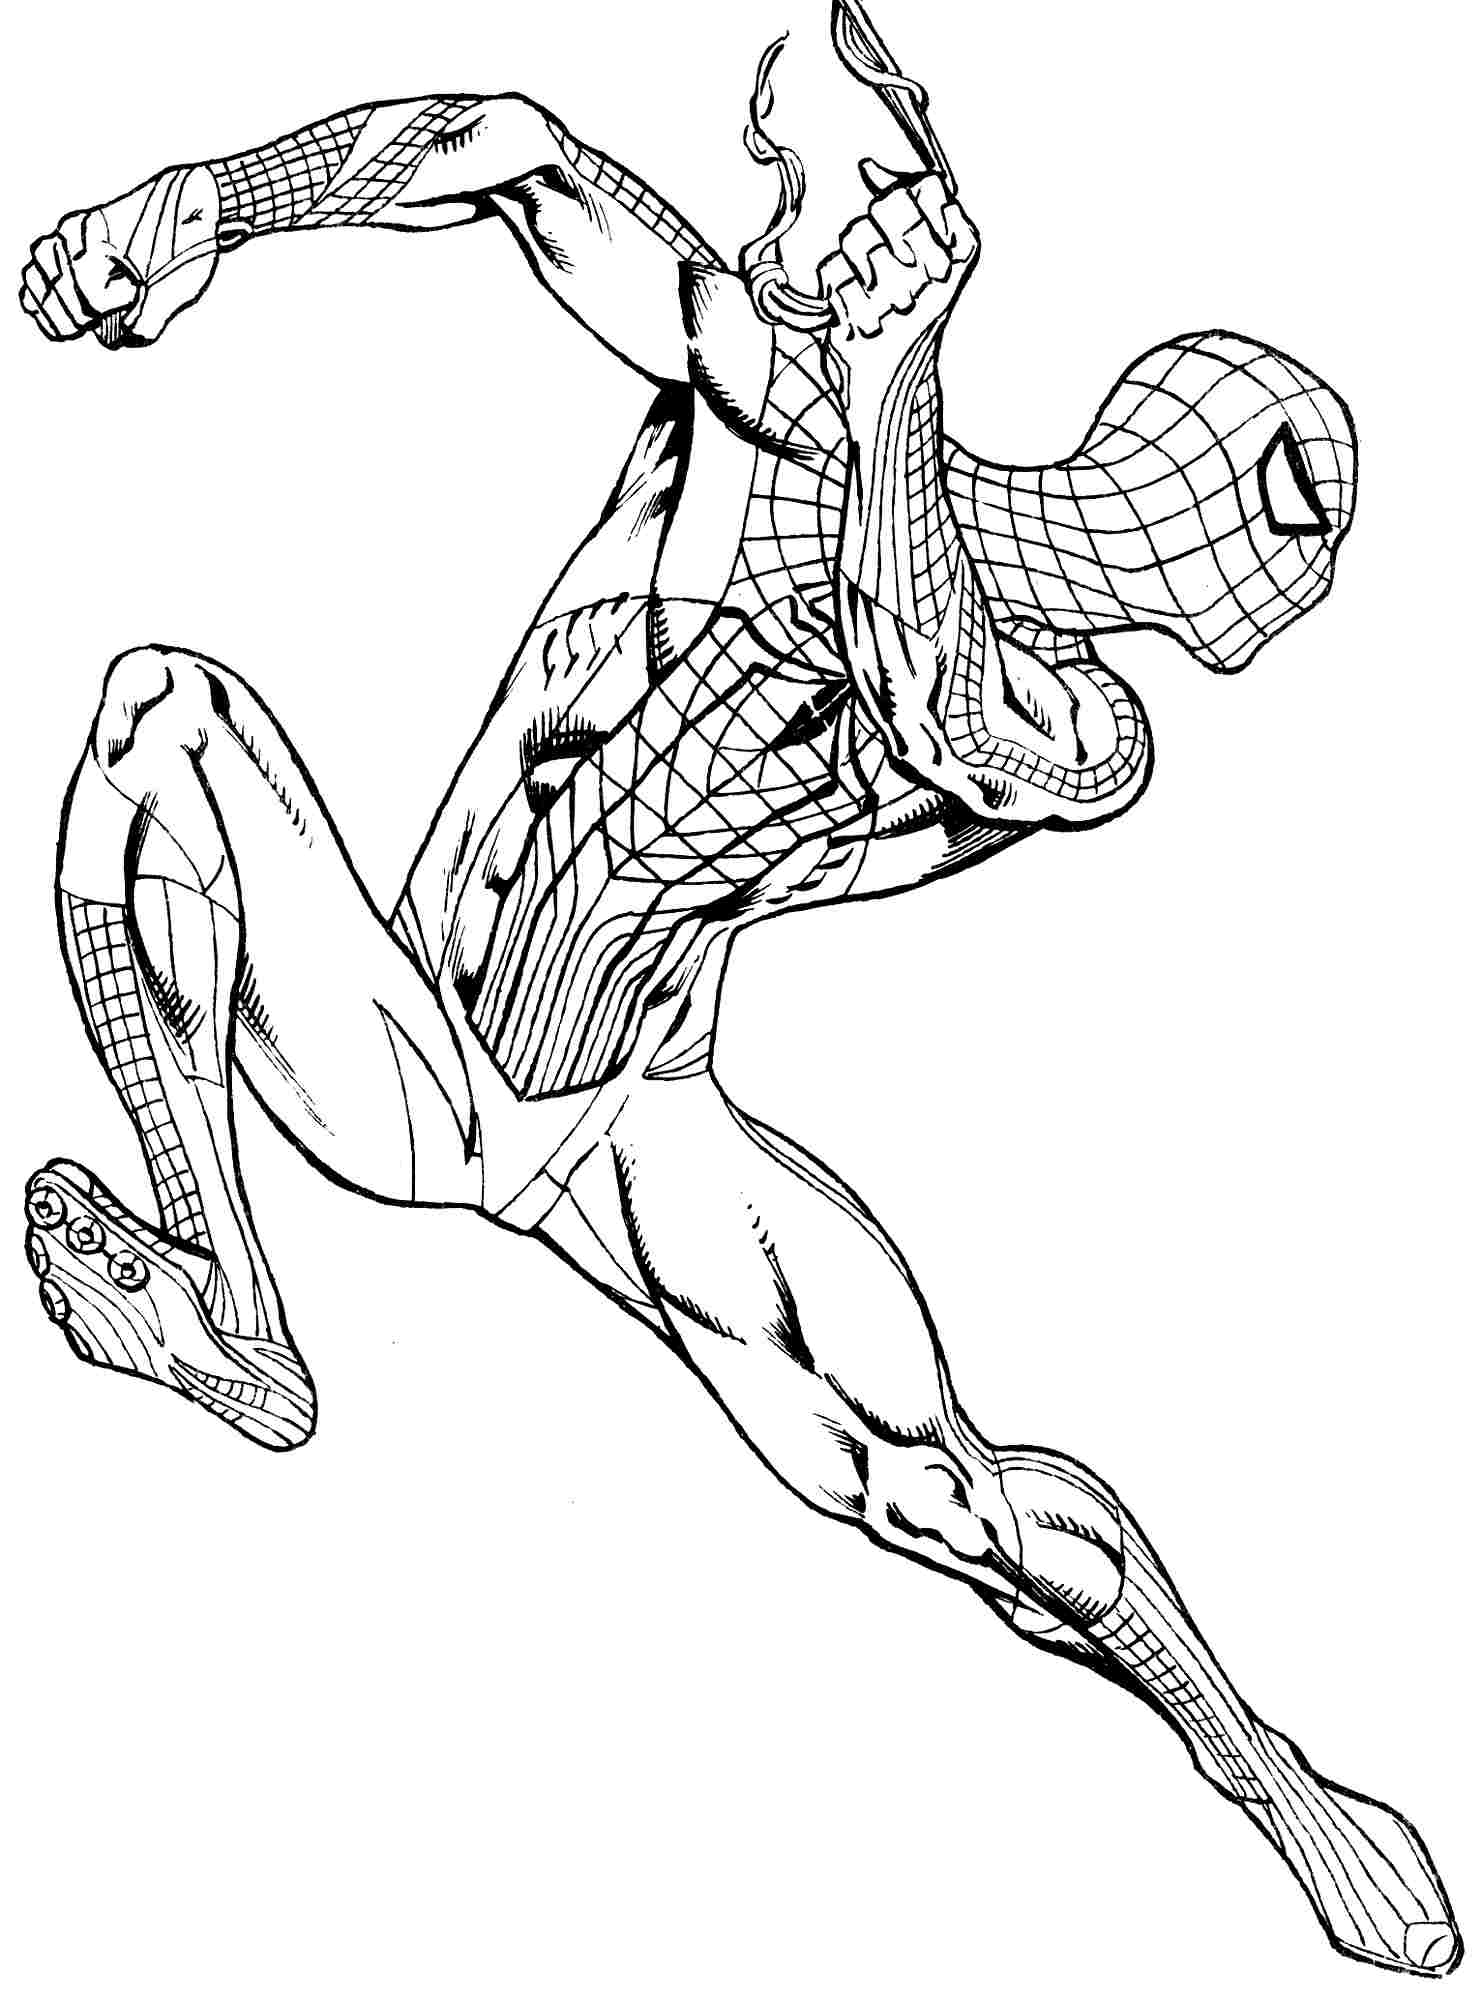 coloring spiderman color spiderman to print spiderman kids coloring pages color coloring spiderman